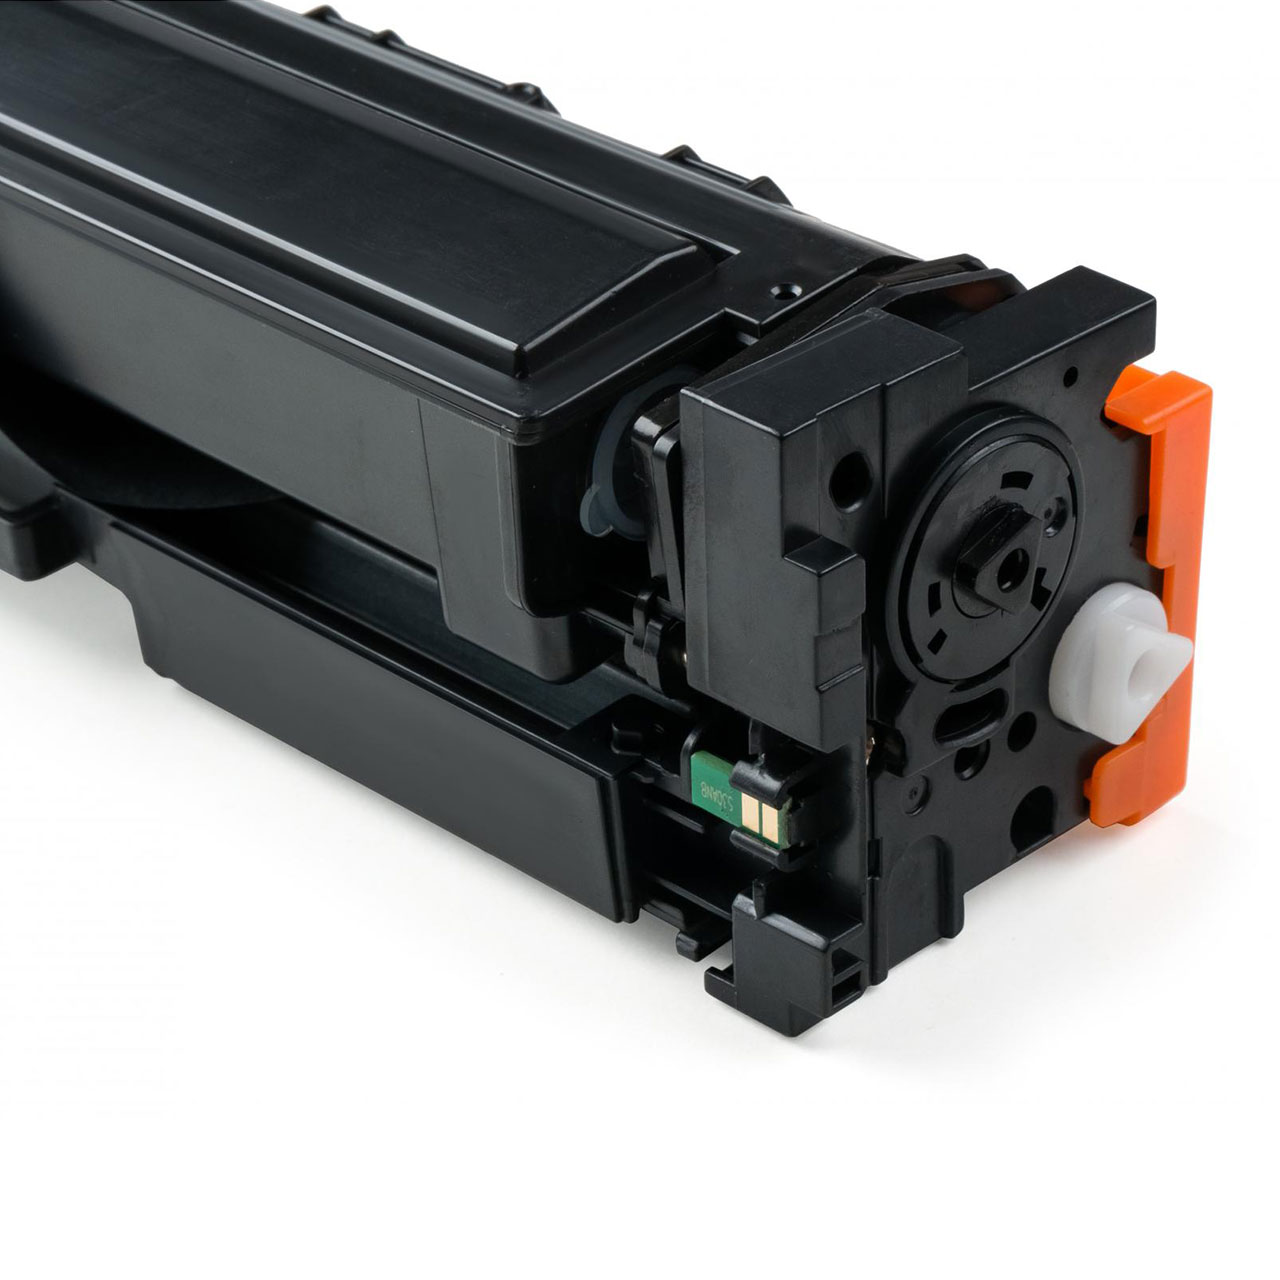 HP 205A Black, CF530A Toner Cartridge